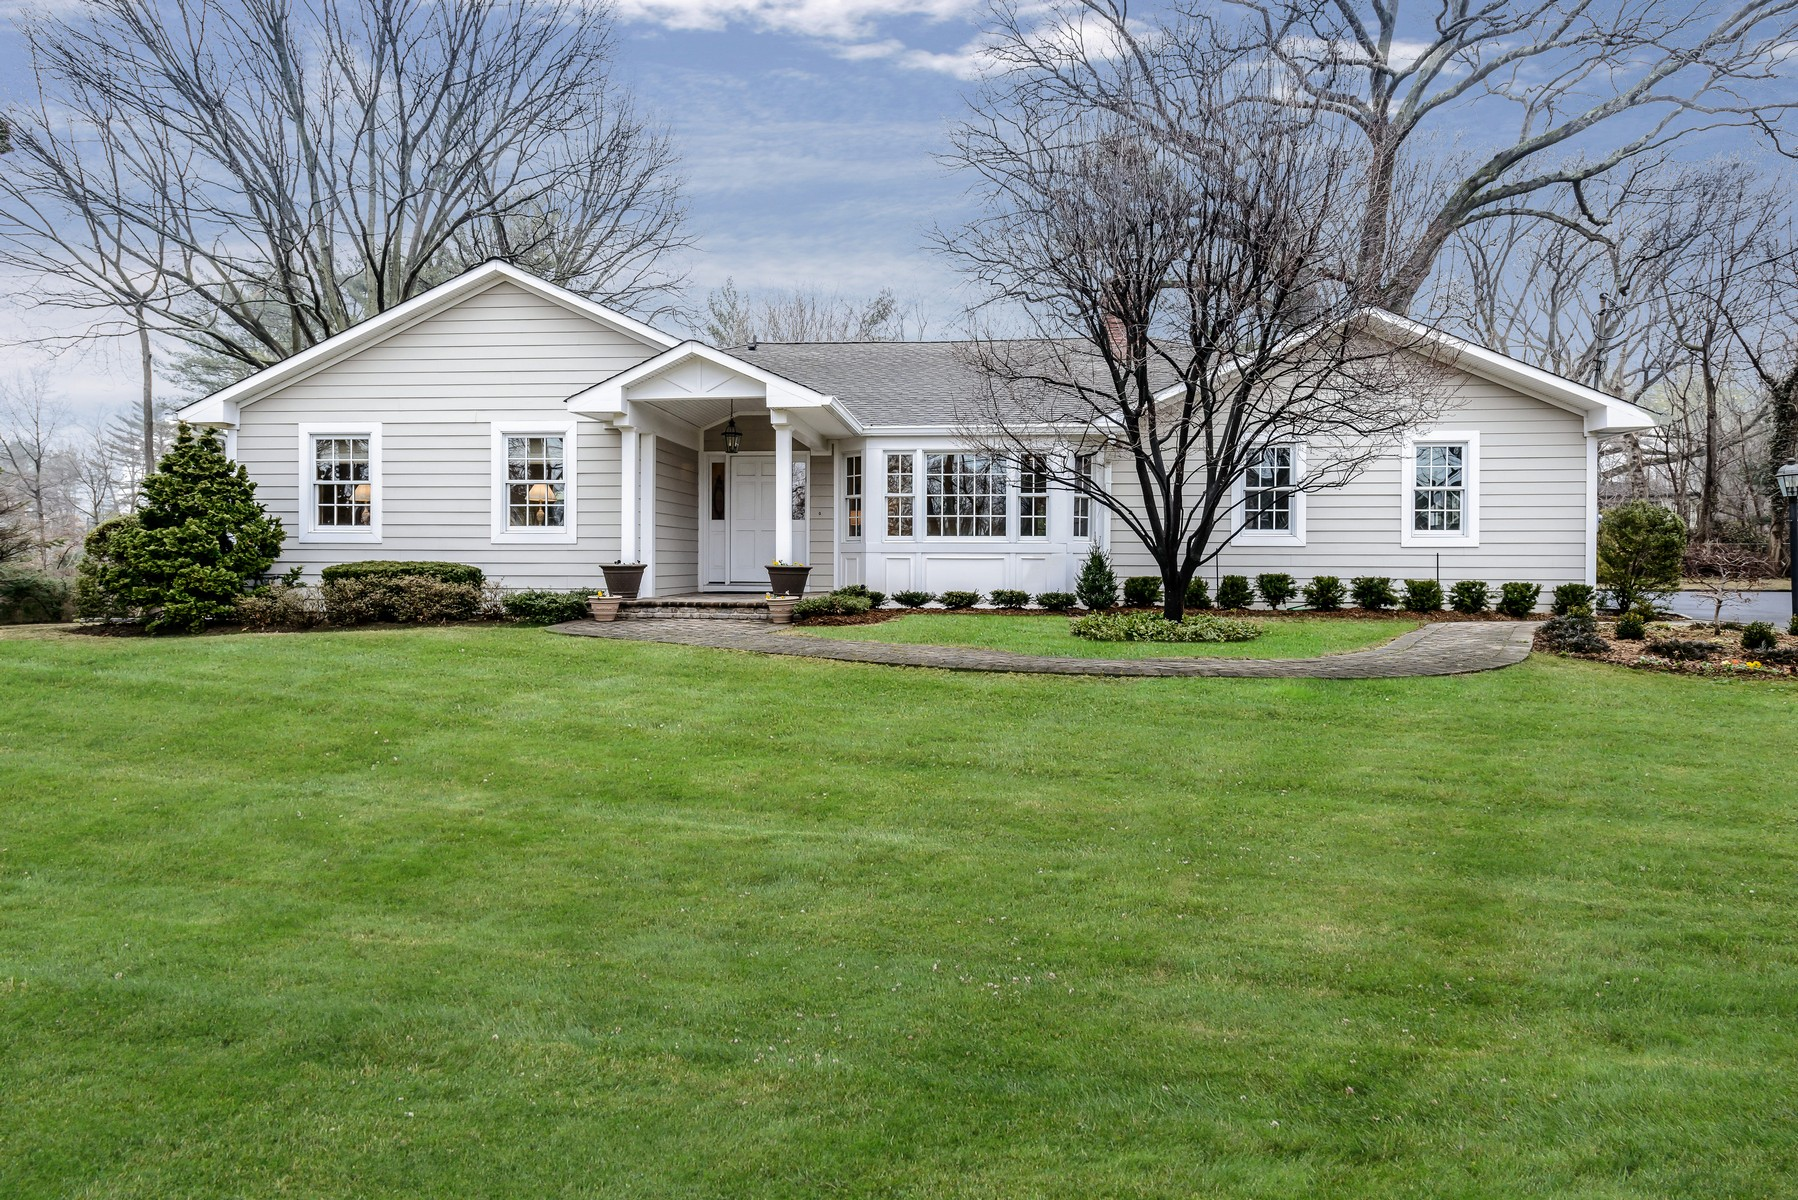 Single Family Home for Sale at Ranch 41 Cornwall Ln Sands Point, New York, 11050 United States